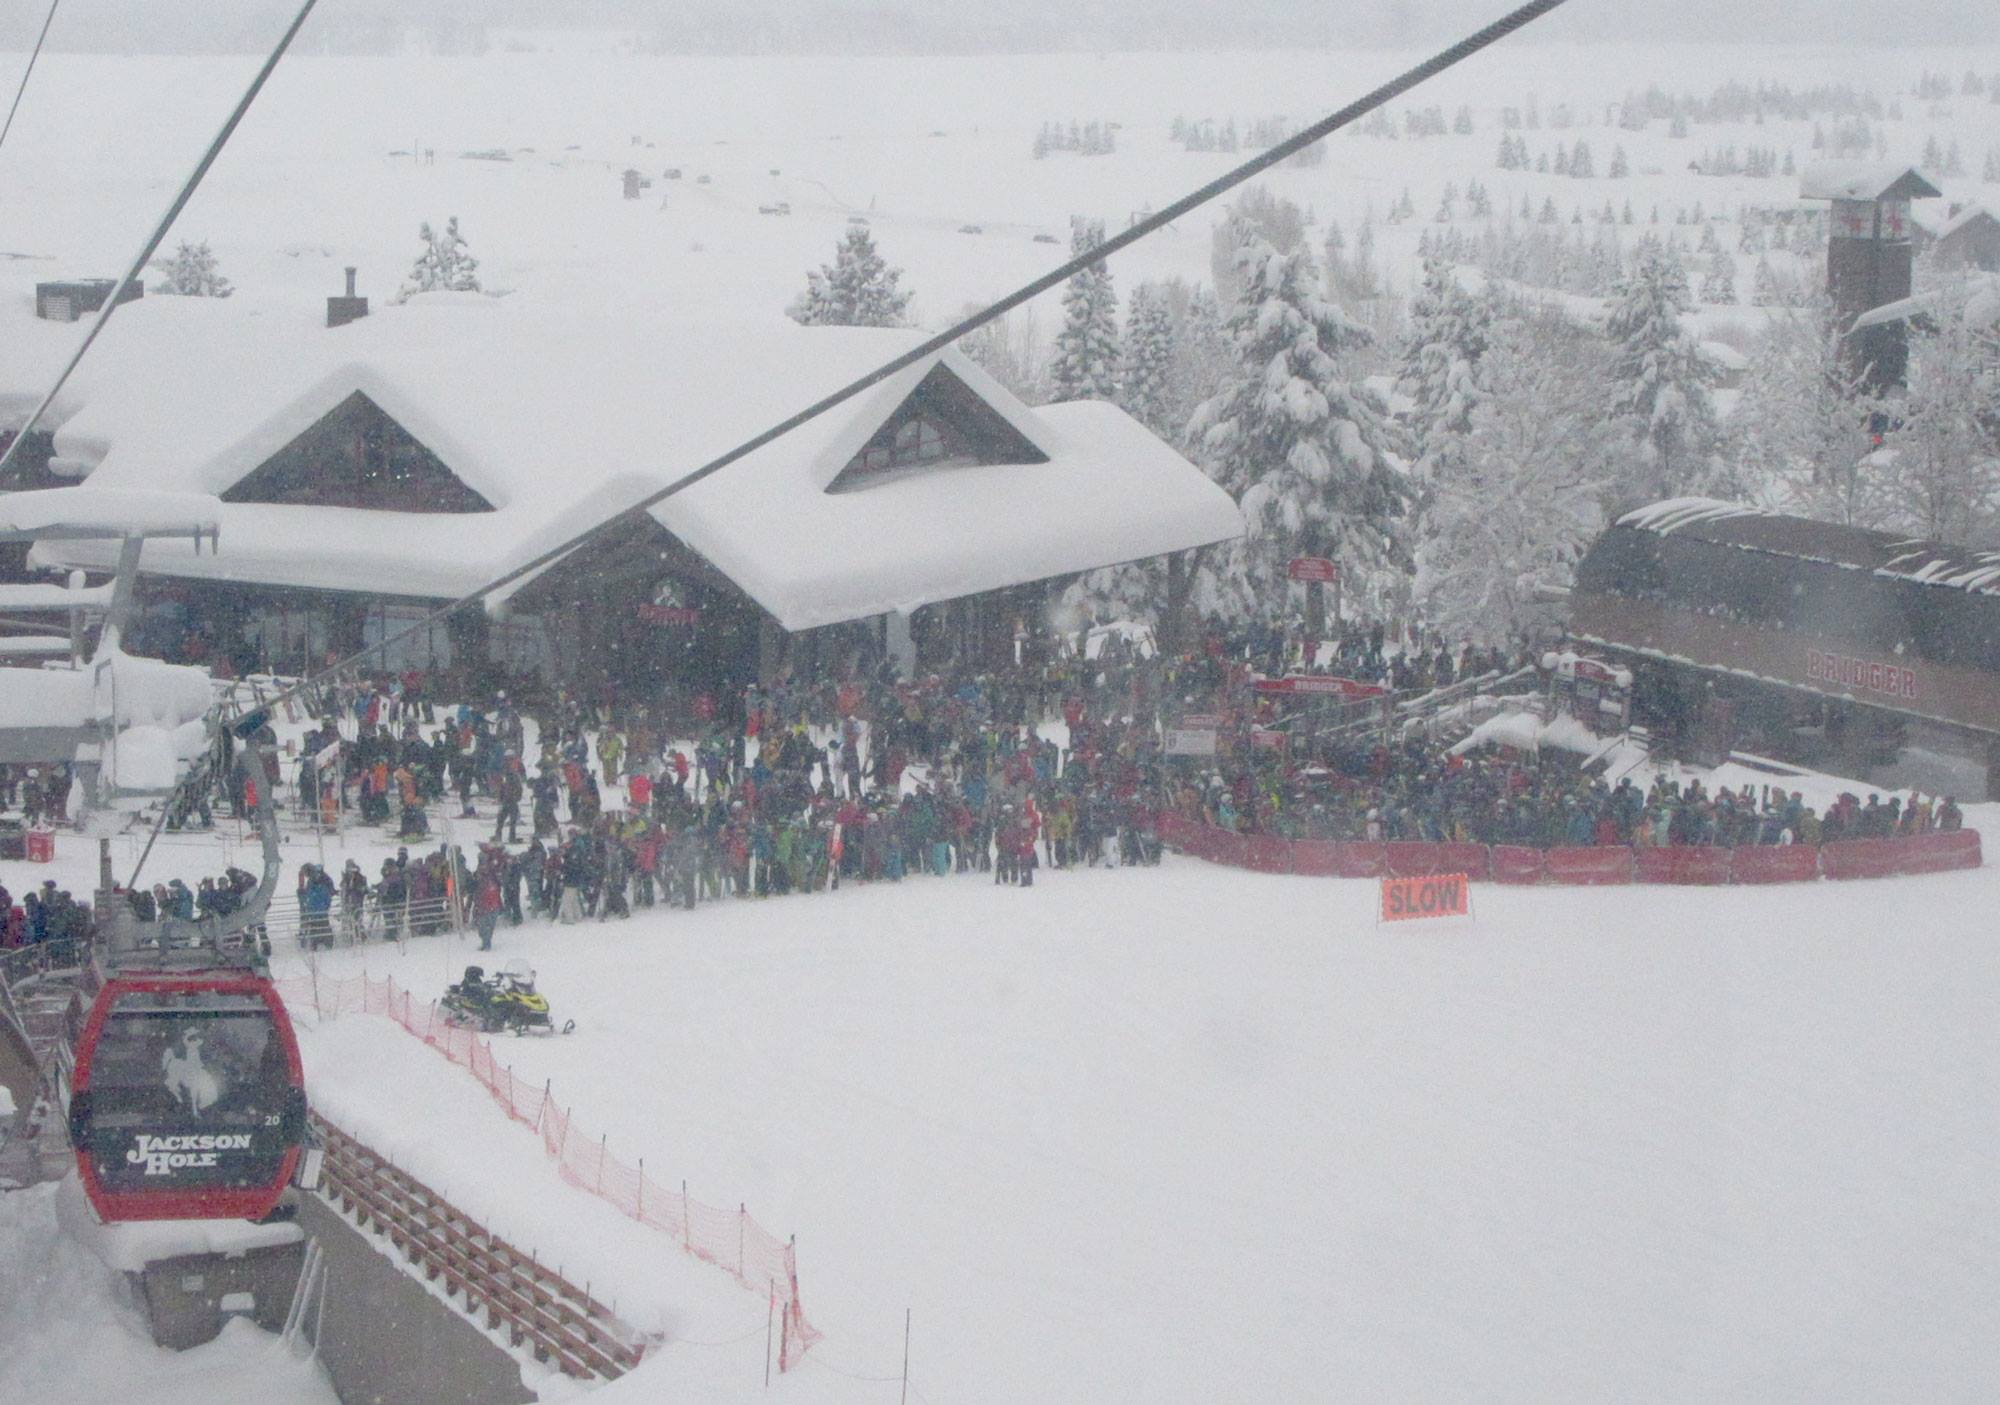 Powder gondola queue